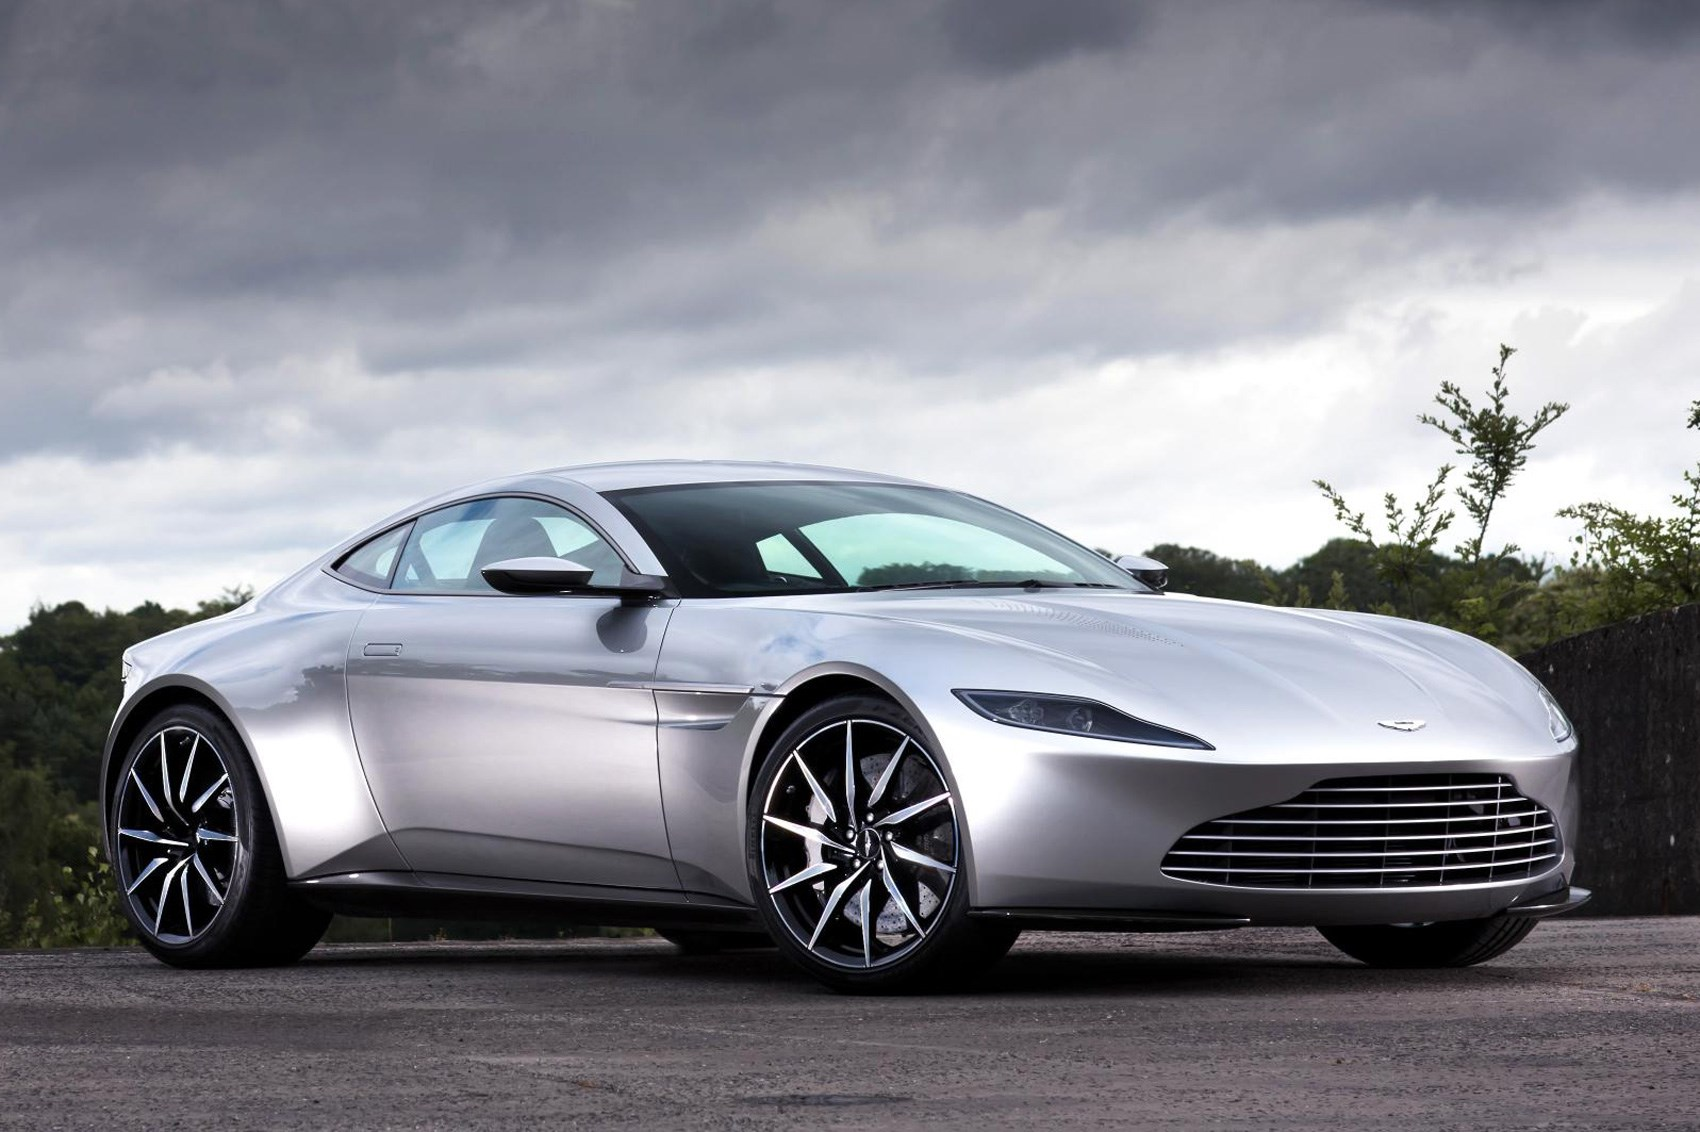 New 2018 Aston Martin Vantage pics specs prices by CAR Magazine